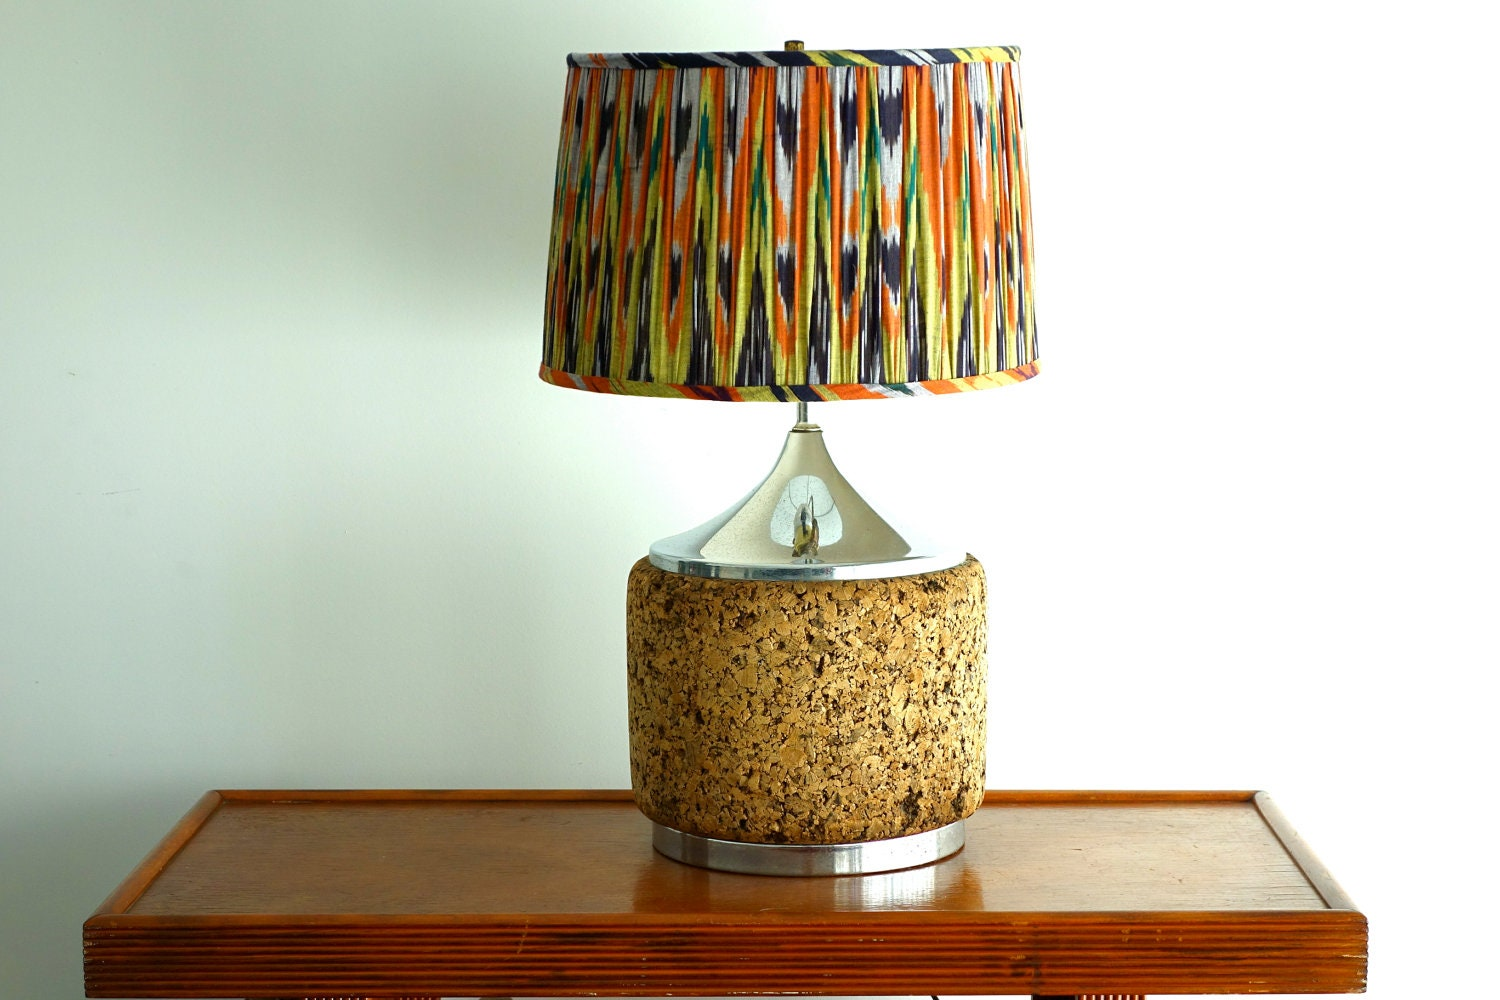 Table lamp vintage style - Retro Desk Lamps On Vintage Cork And Chrome Table Lamp Desk Light Retro Lighting